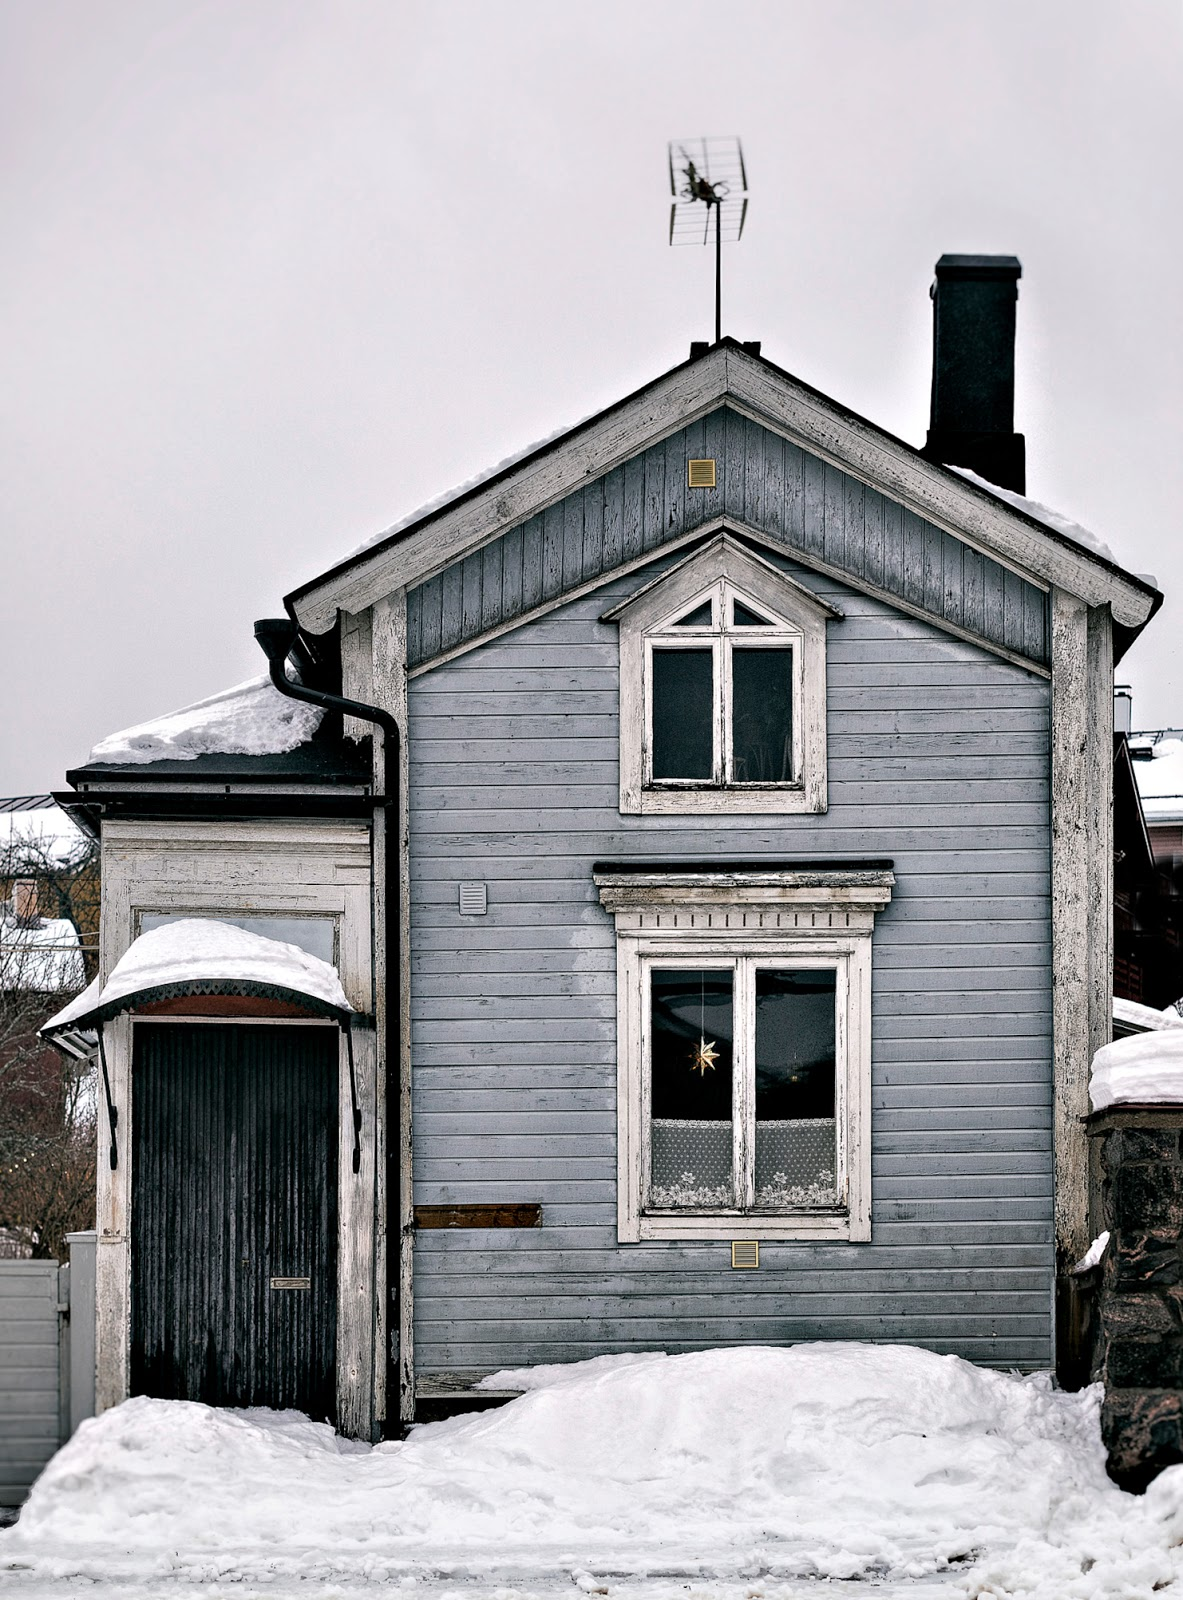 Porvoo, visitporvoo, suomi, finland, finlandphotolovers, outdootphotography, outdoors, einter, scandinavia, old town, nordicliving, valokuvaaja, photographer, Frida Steiner, Visualaddict, visualaddictfrida, old buildings, vanha kaupunki, vanha rakennus